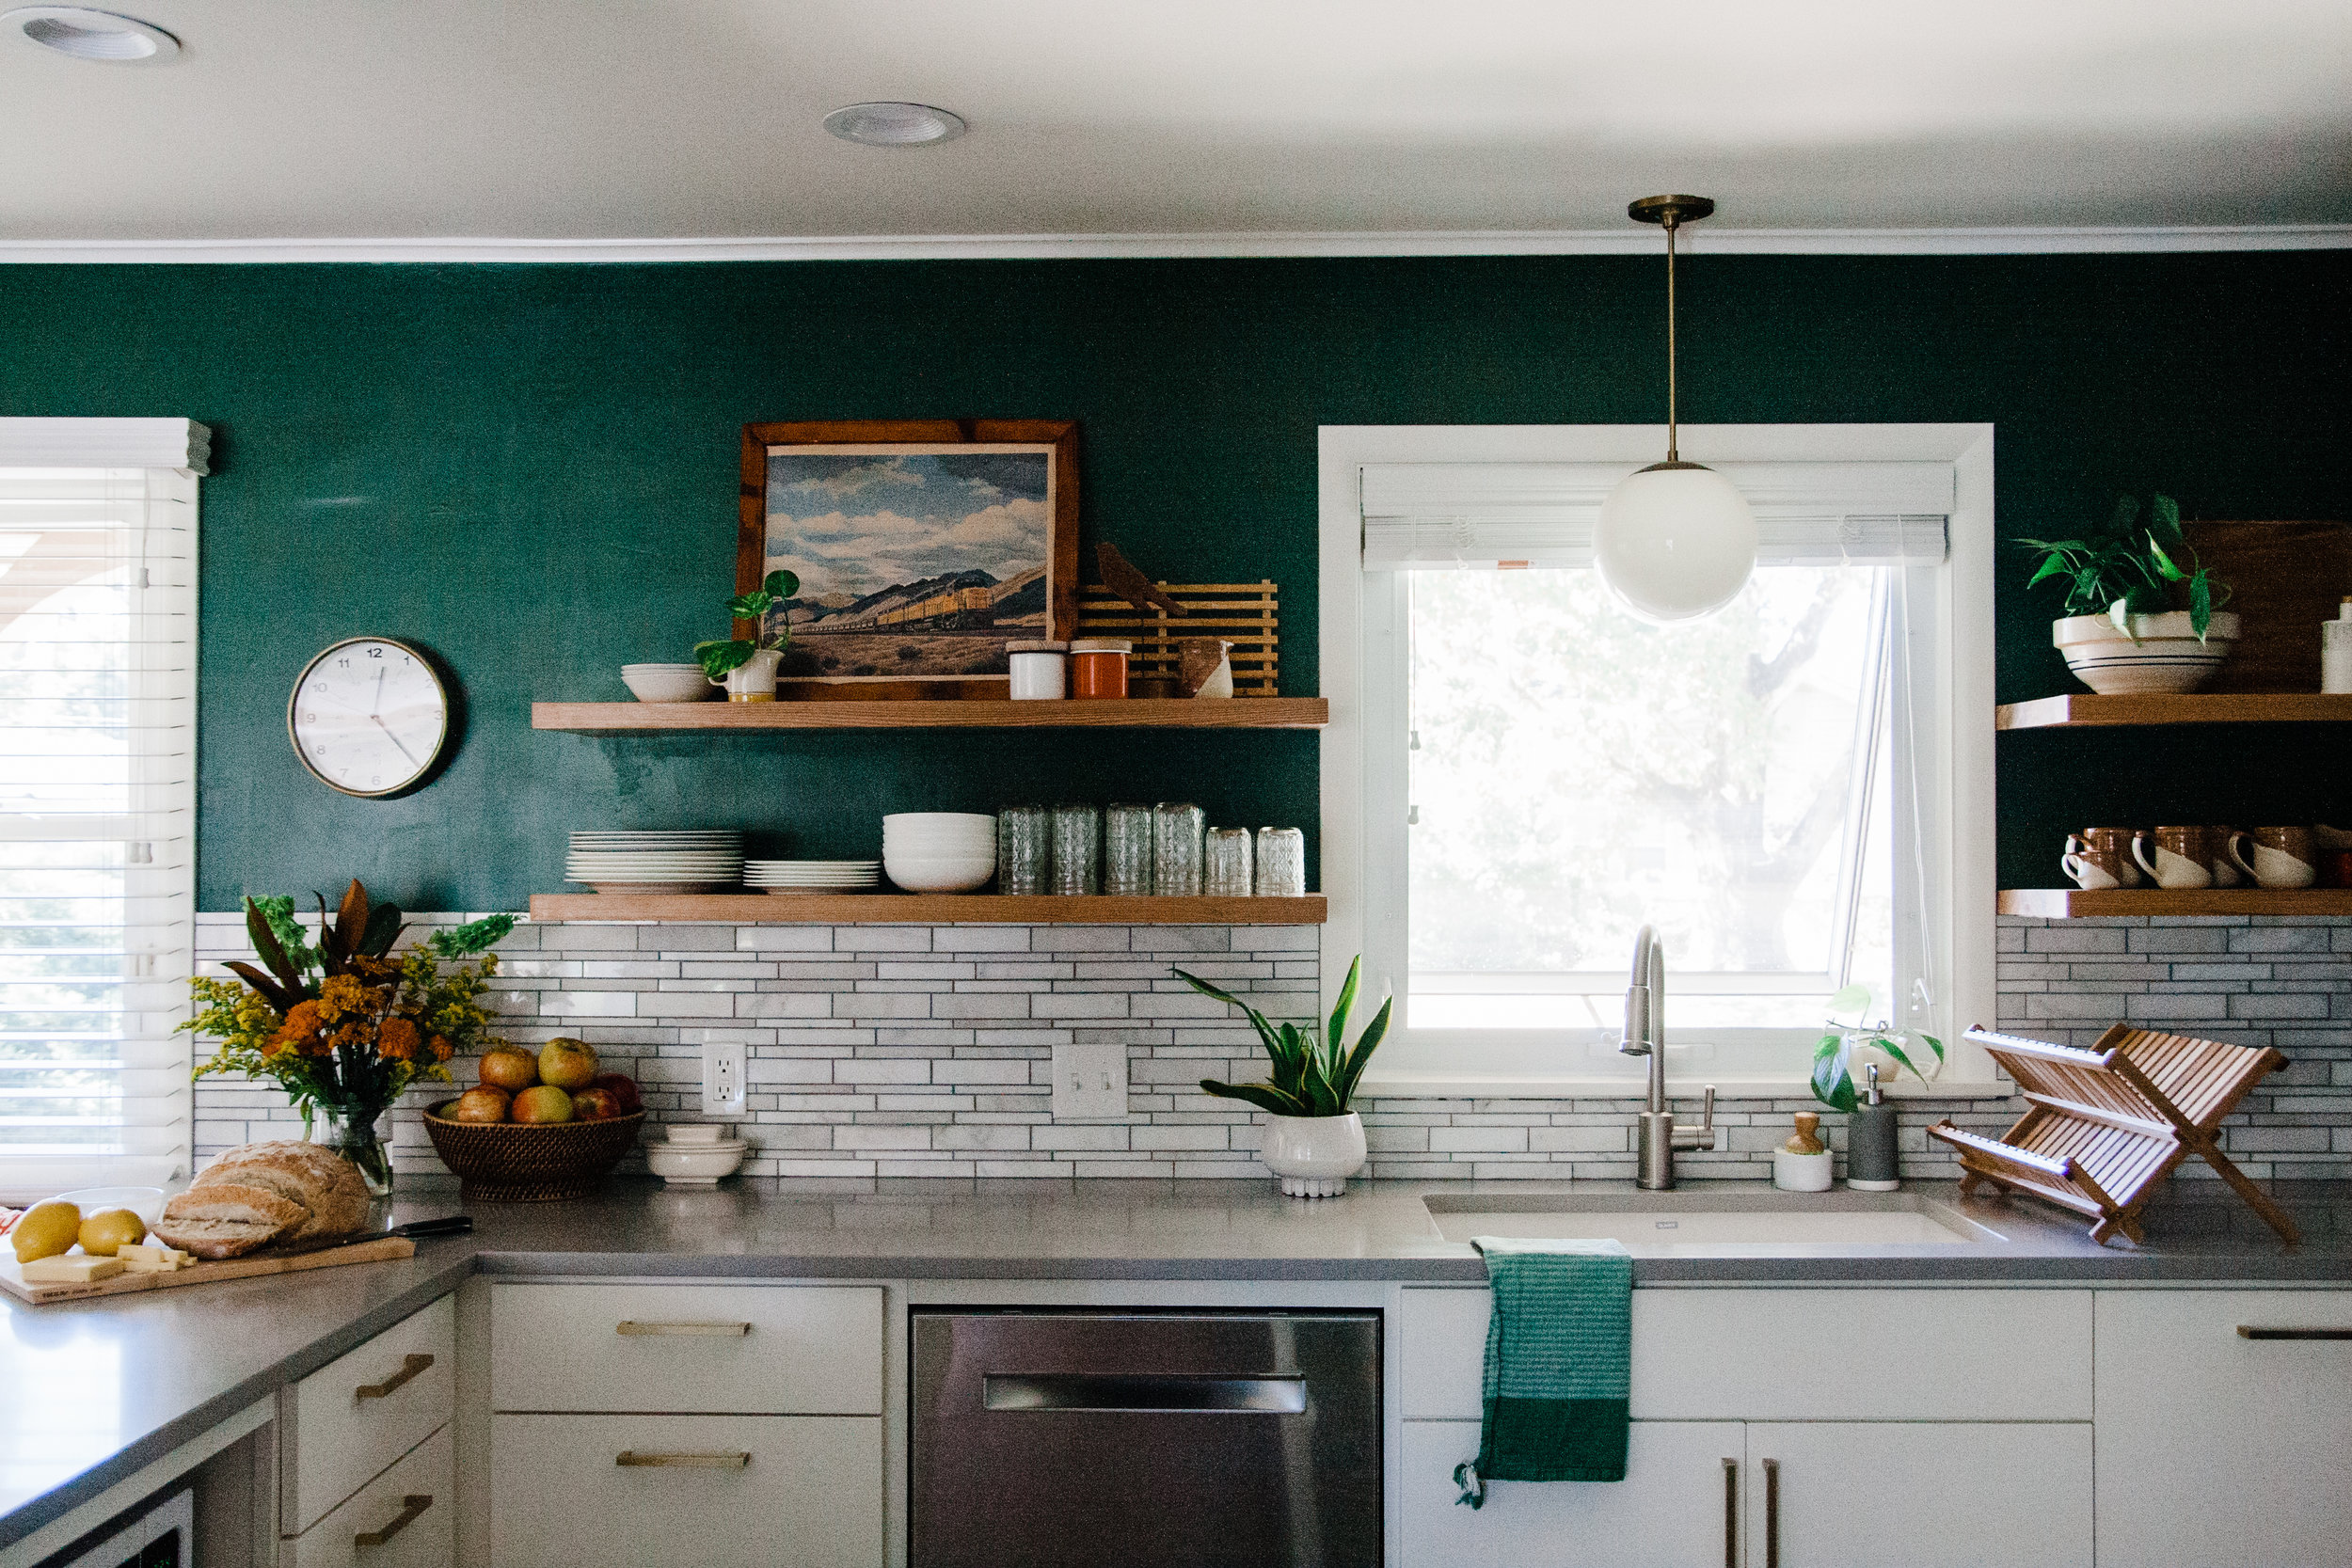 During our design consultation with Ashley Whiteside, she recommended this beautiful backsplash that mimics the stone of our fireplace and home exterior. Thank you, Whiteside!